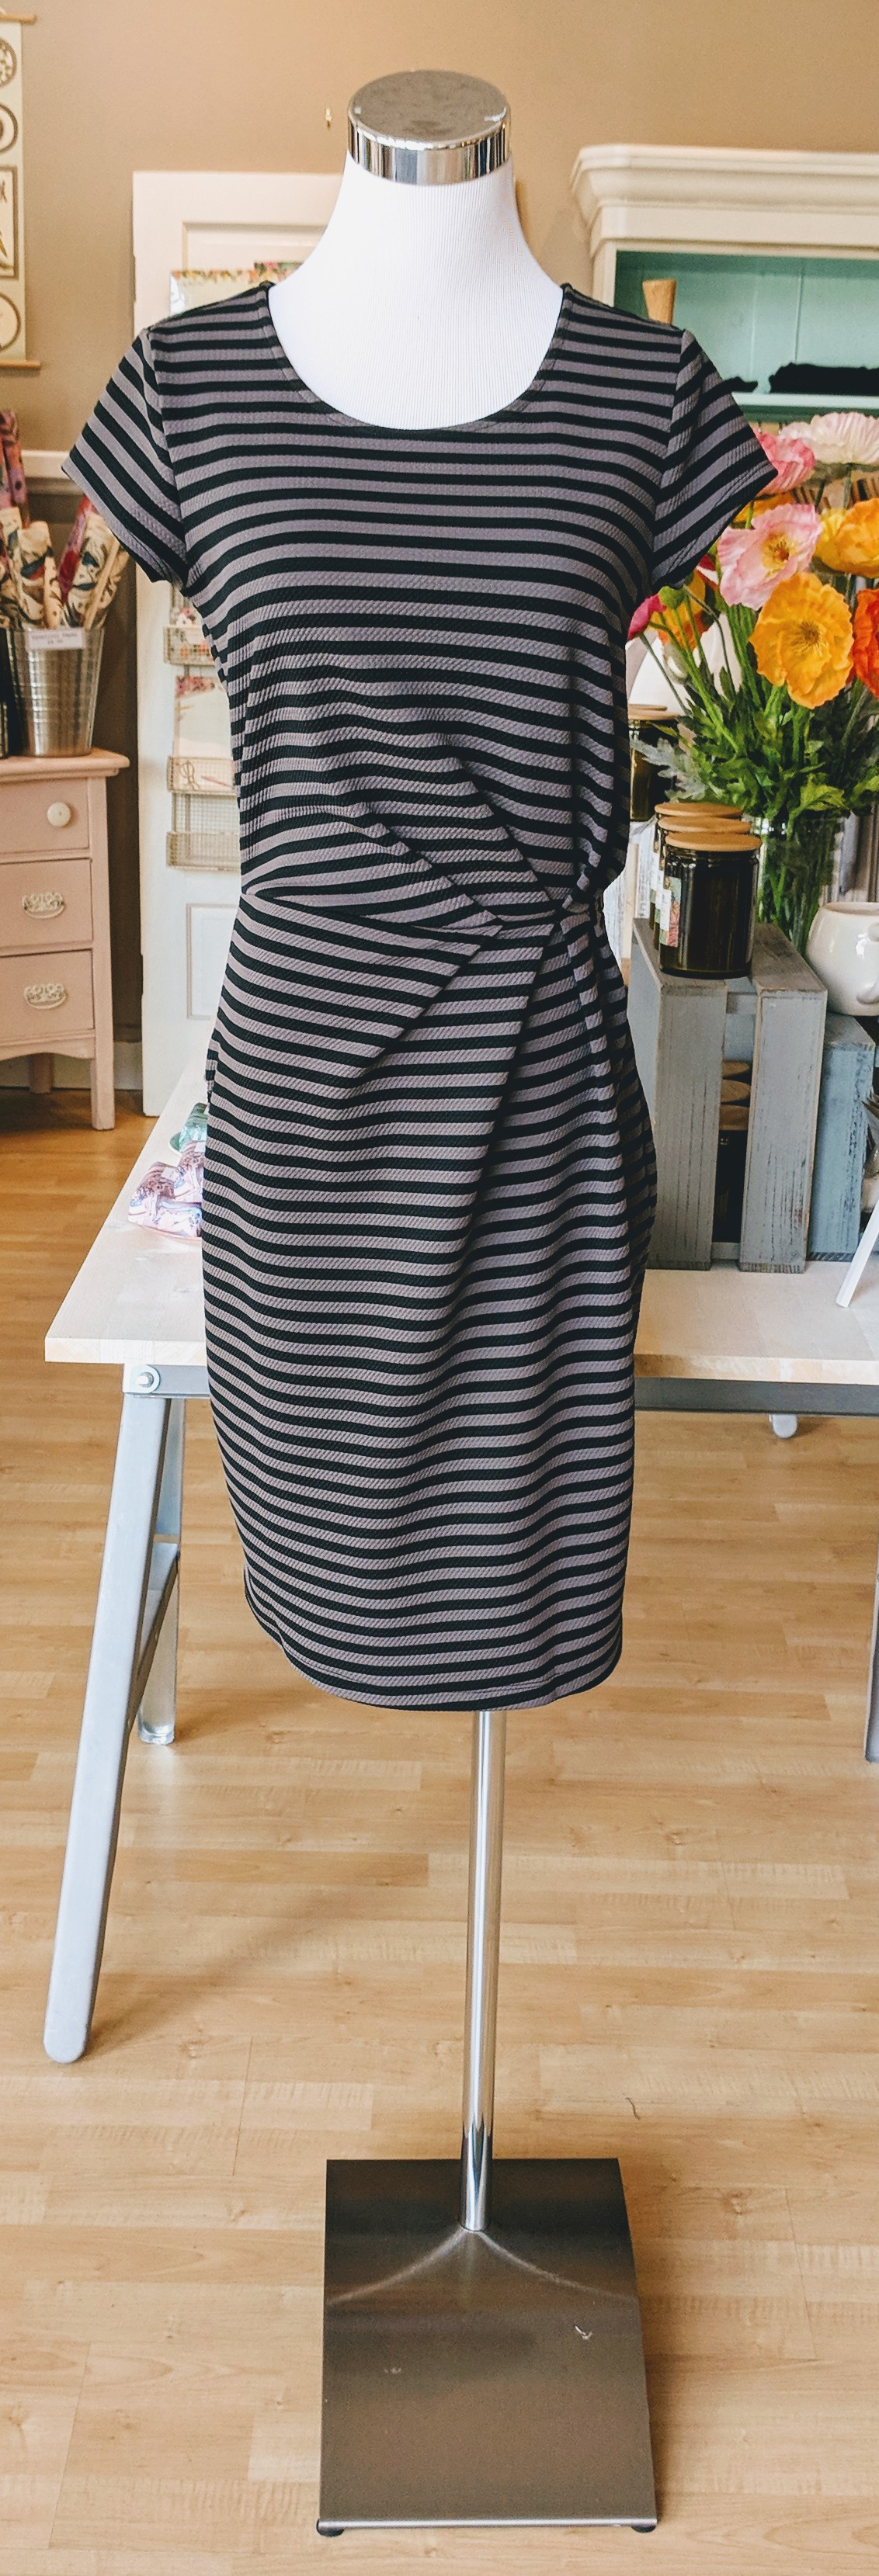 Grey and black stripe mini dress with side cinch detail.